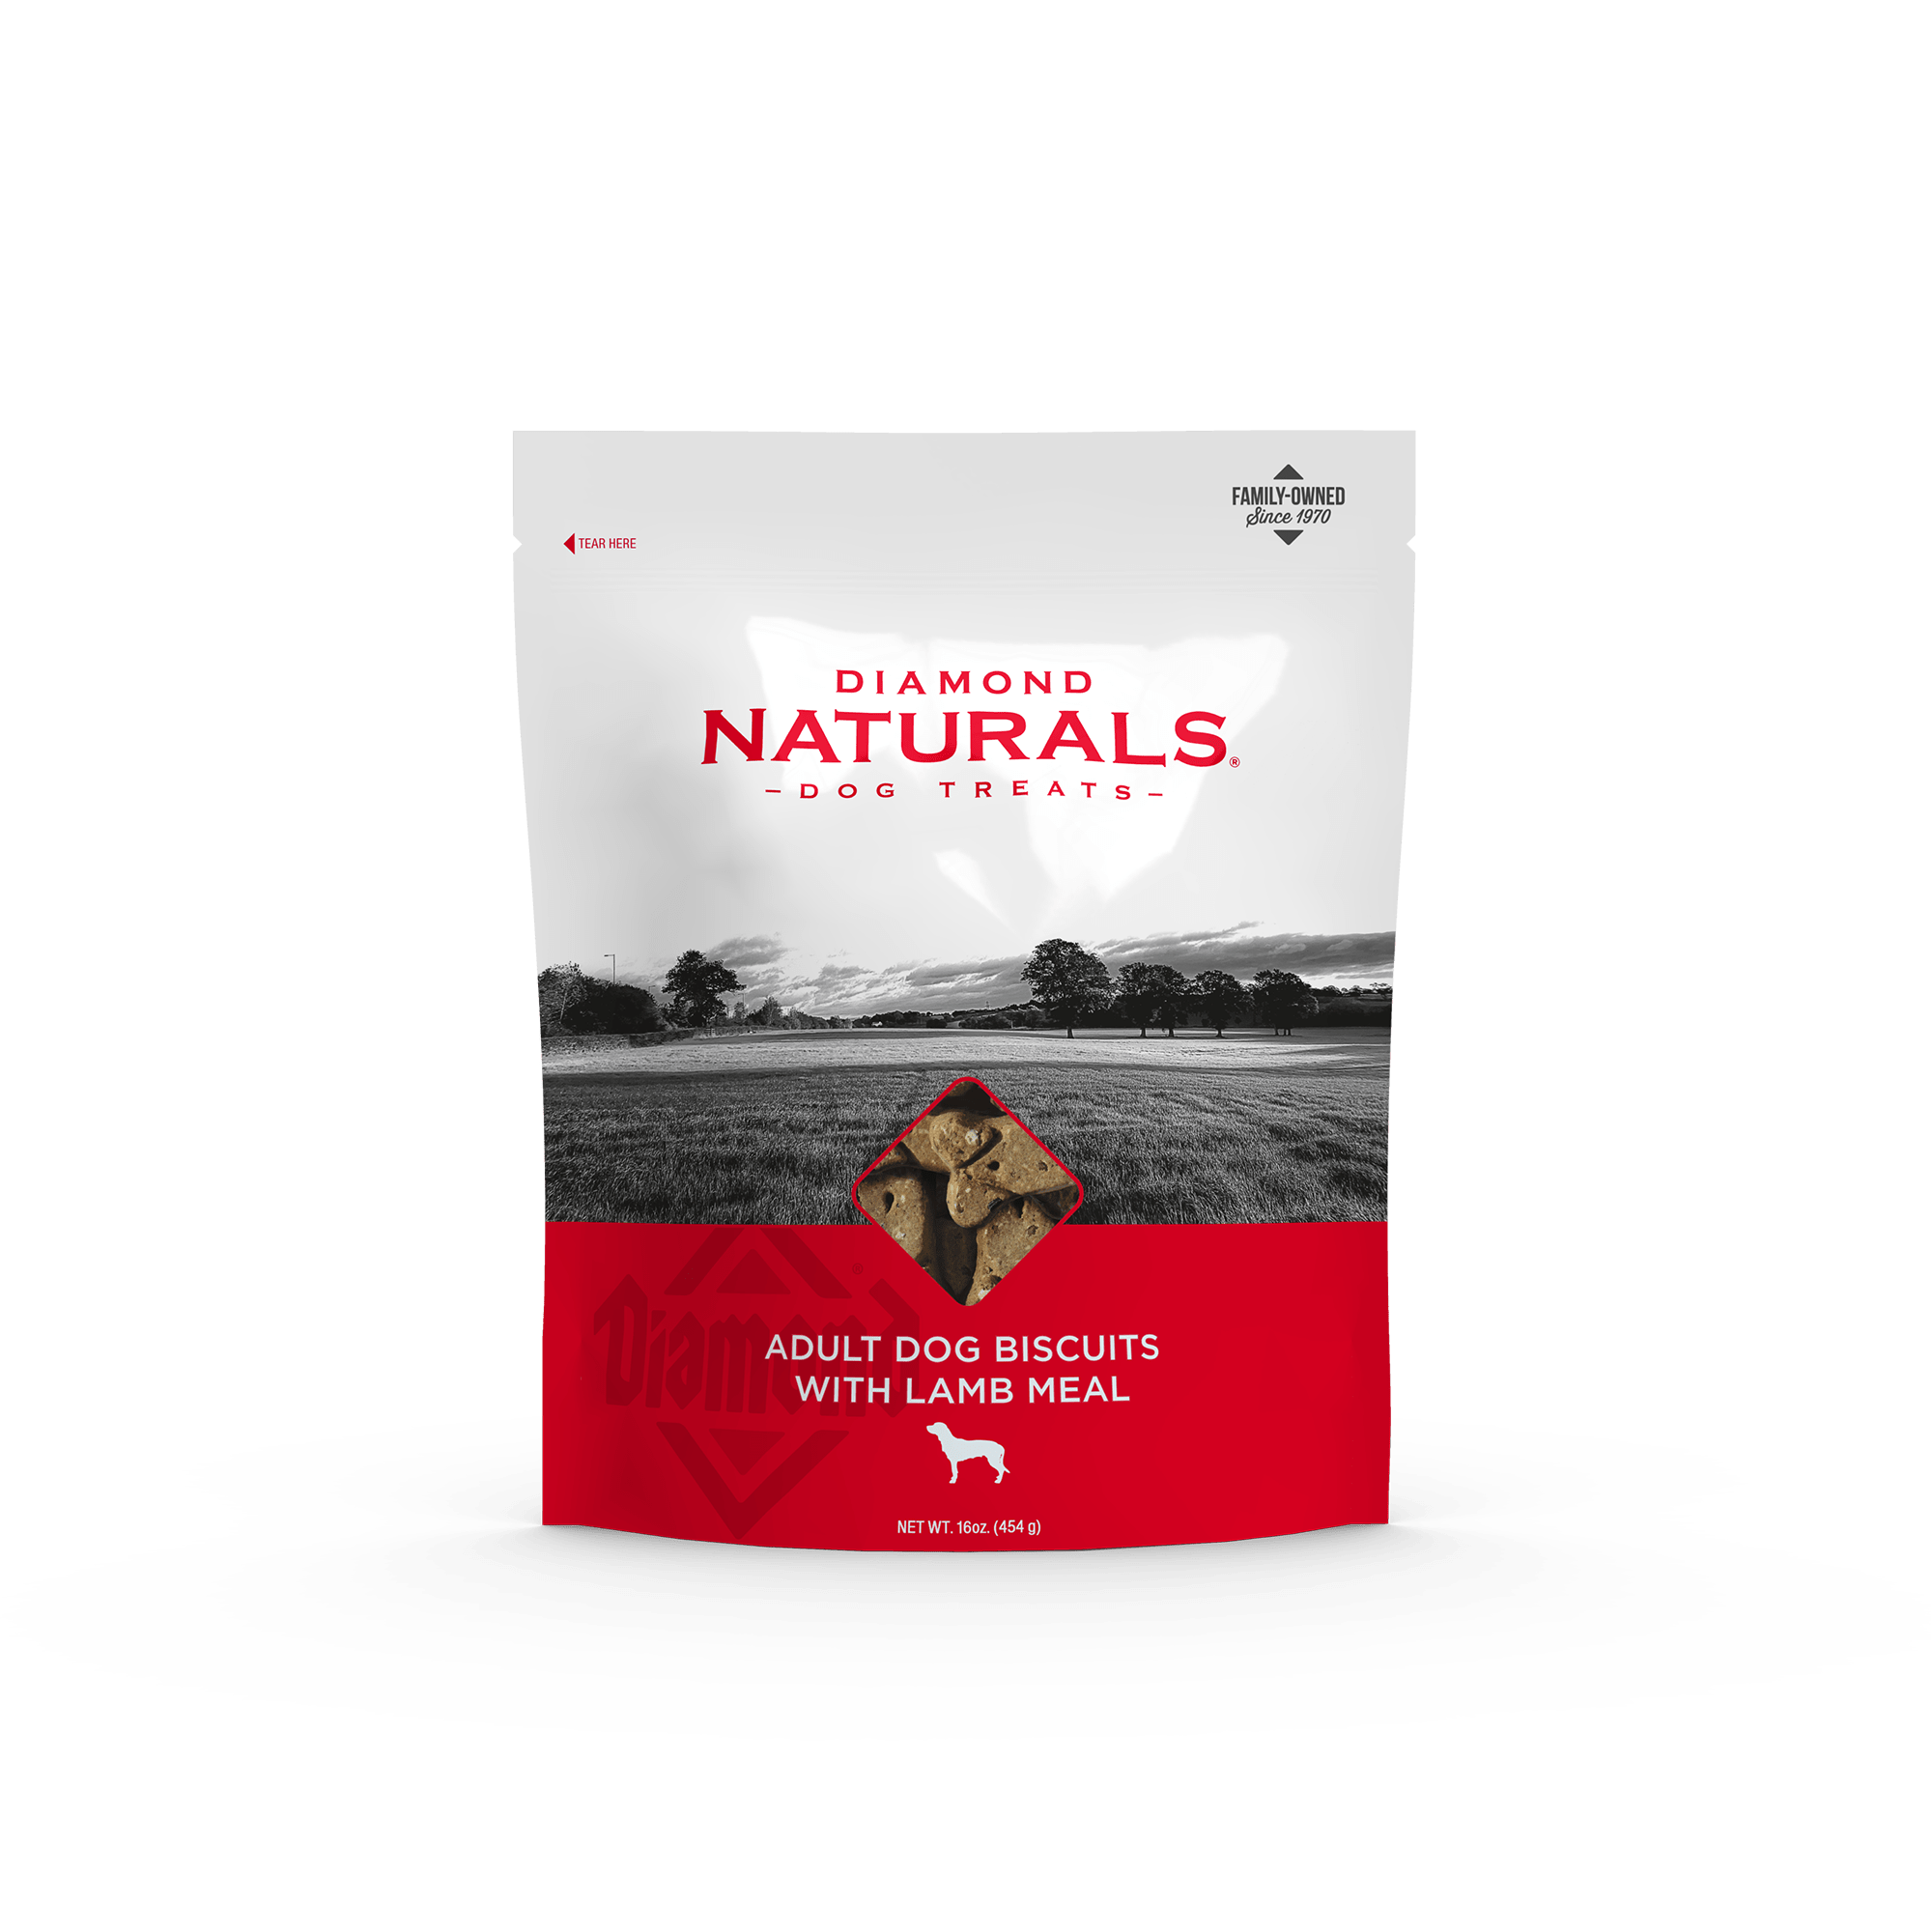 lamb meal biscuits | Diamond Naturals